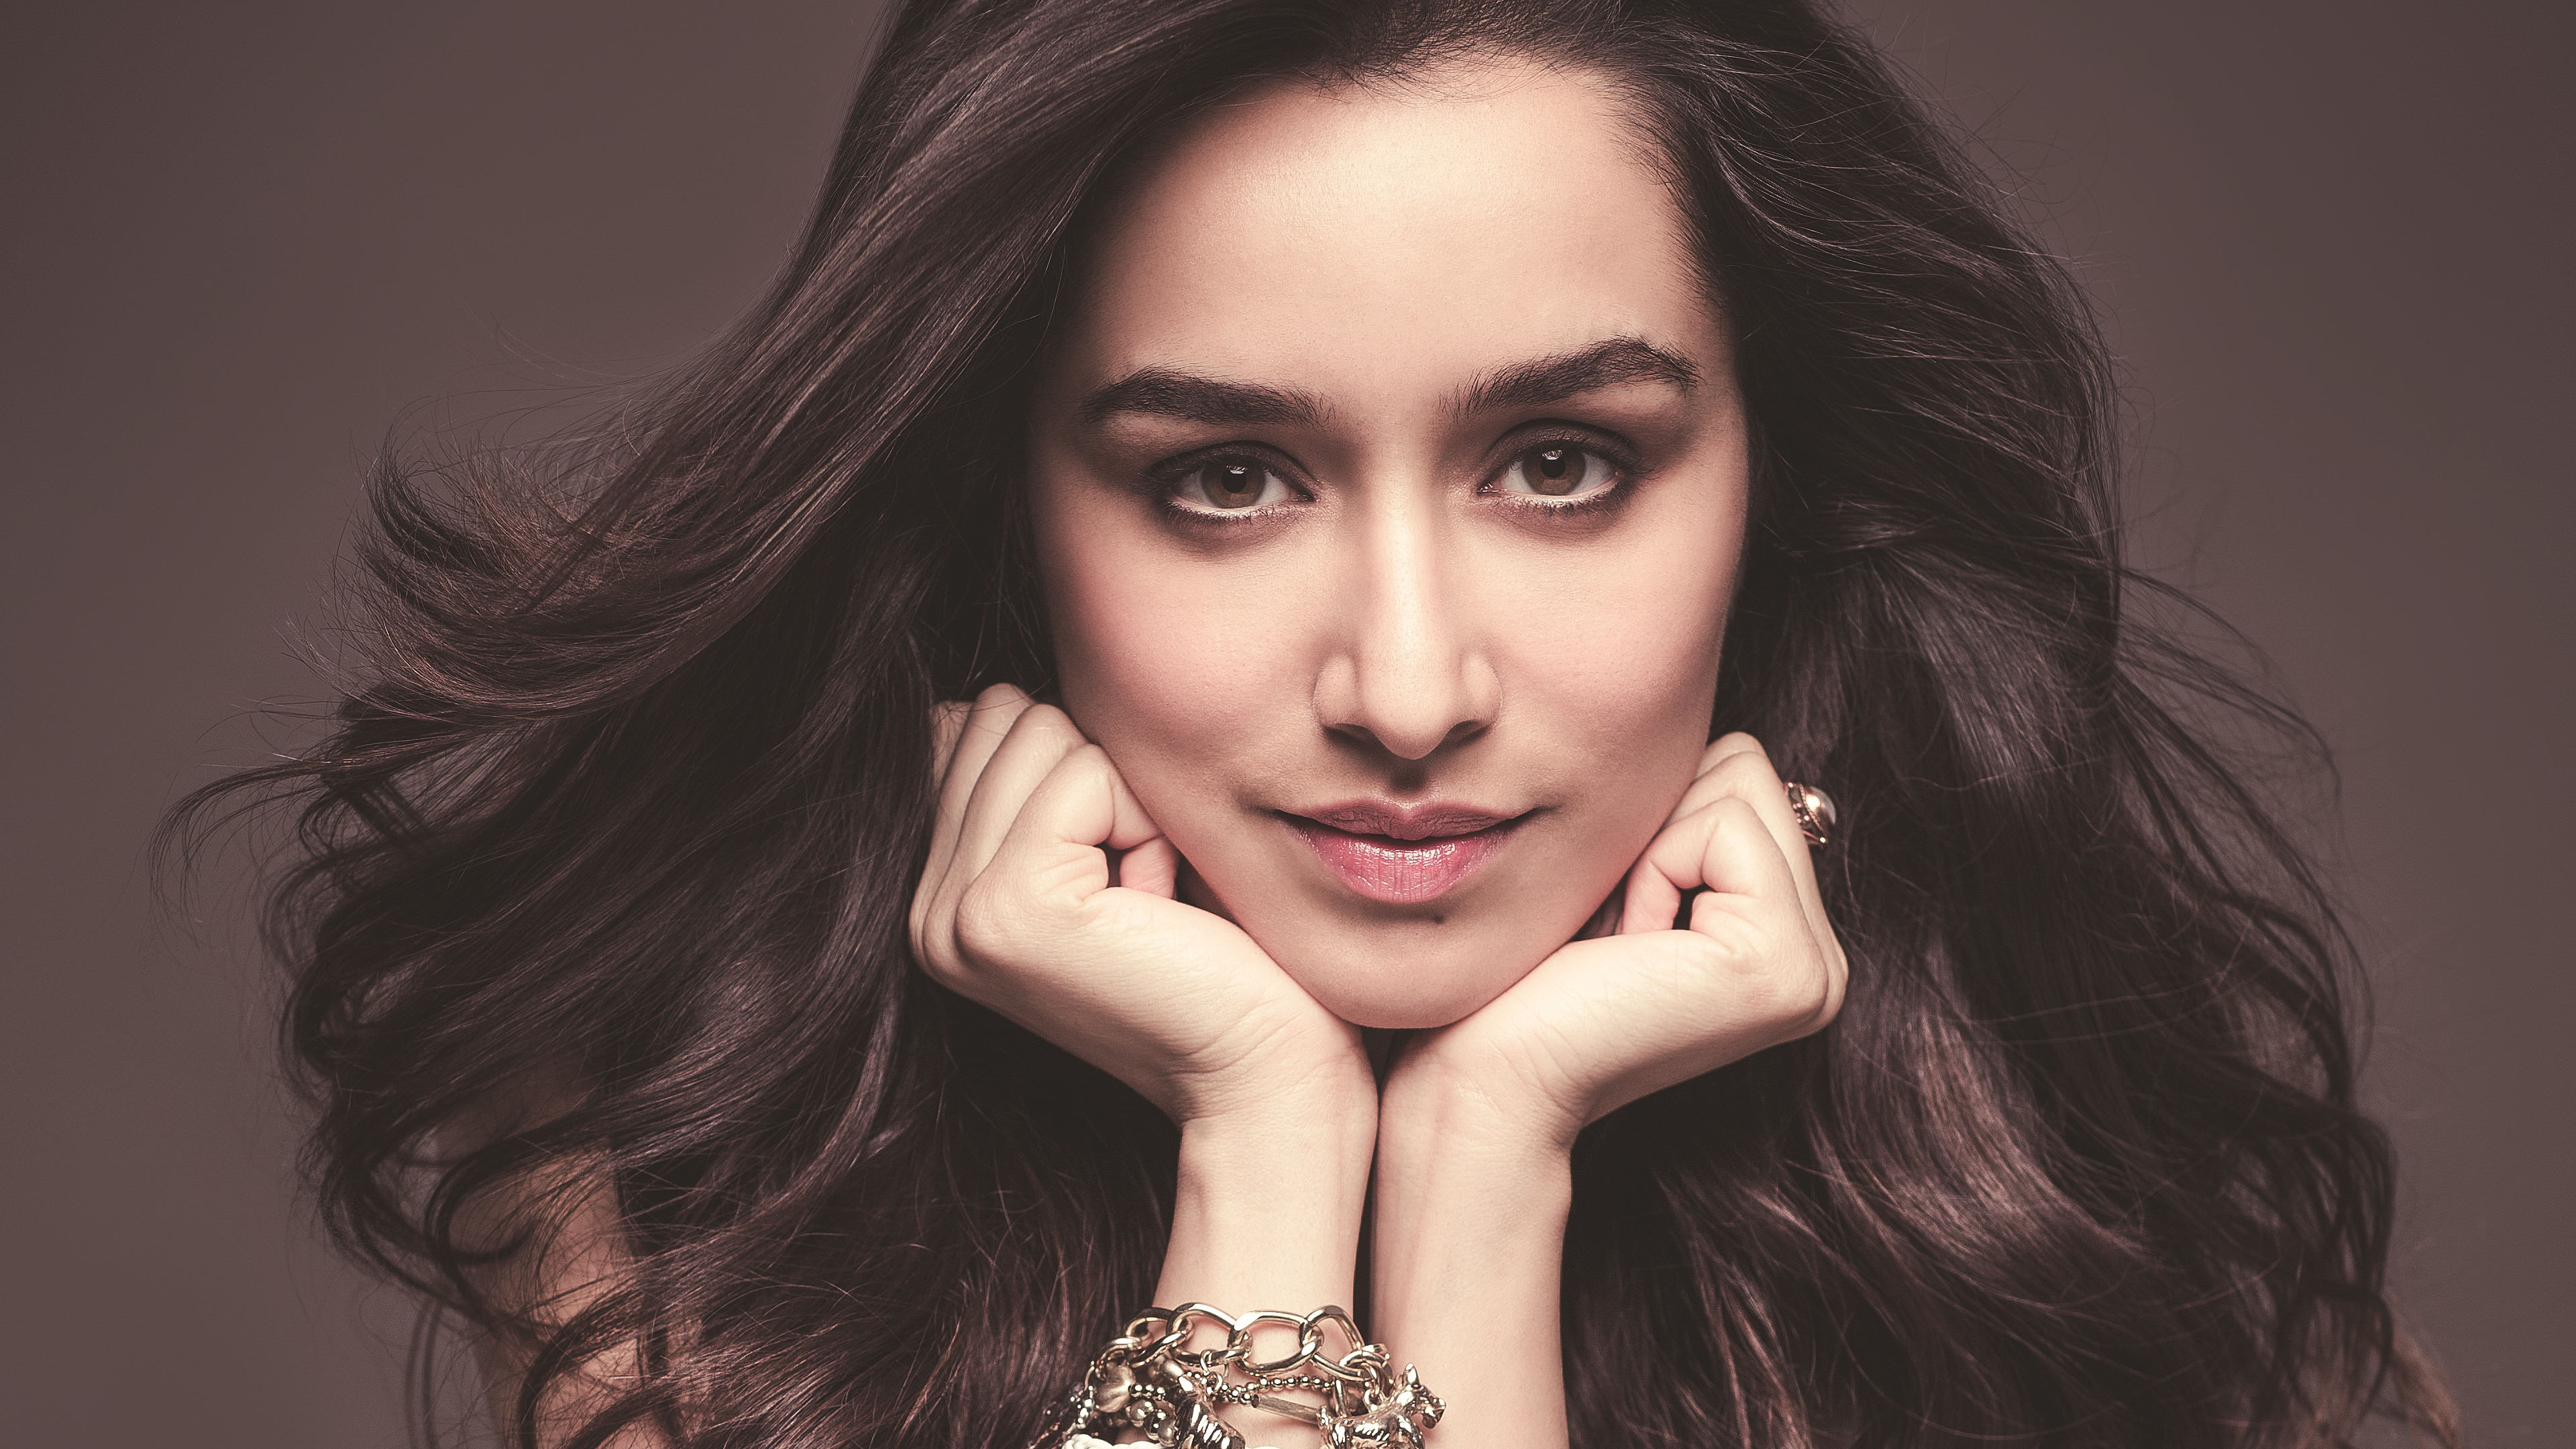 4k shraddha kapoor, hd celebrities, 4k wallpapers, images